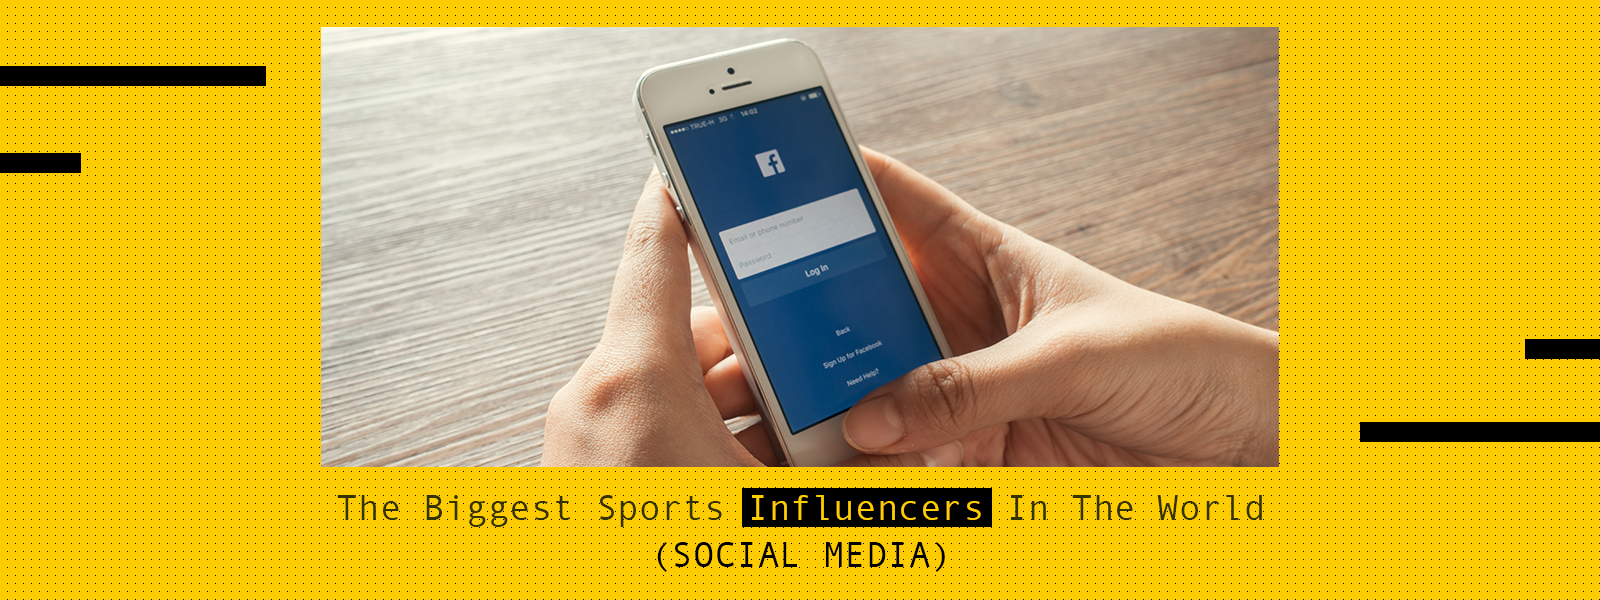 The Biggest Social Media Sports Influencers In The World